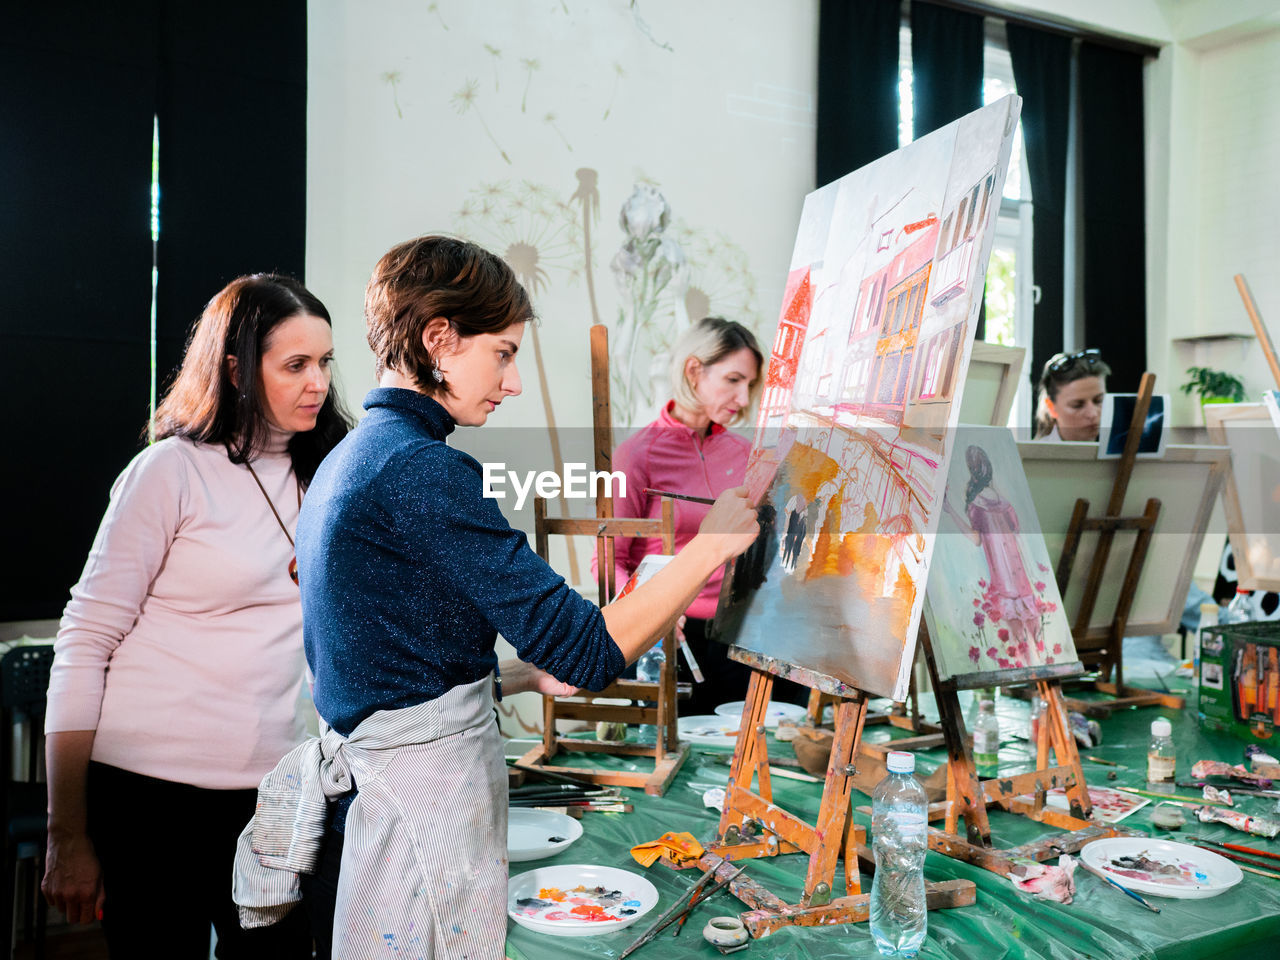 Woman Looking At Painter Painting In Studio